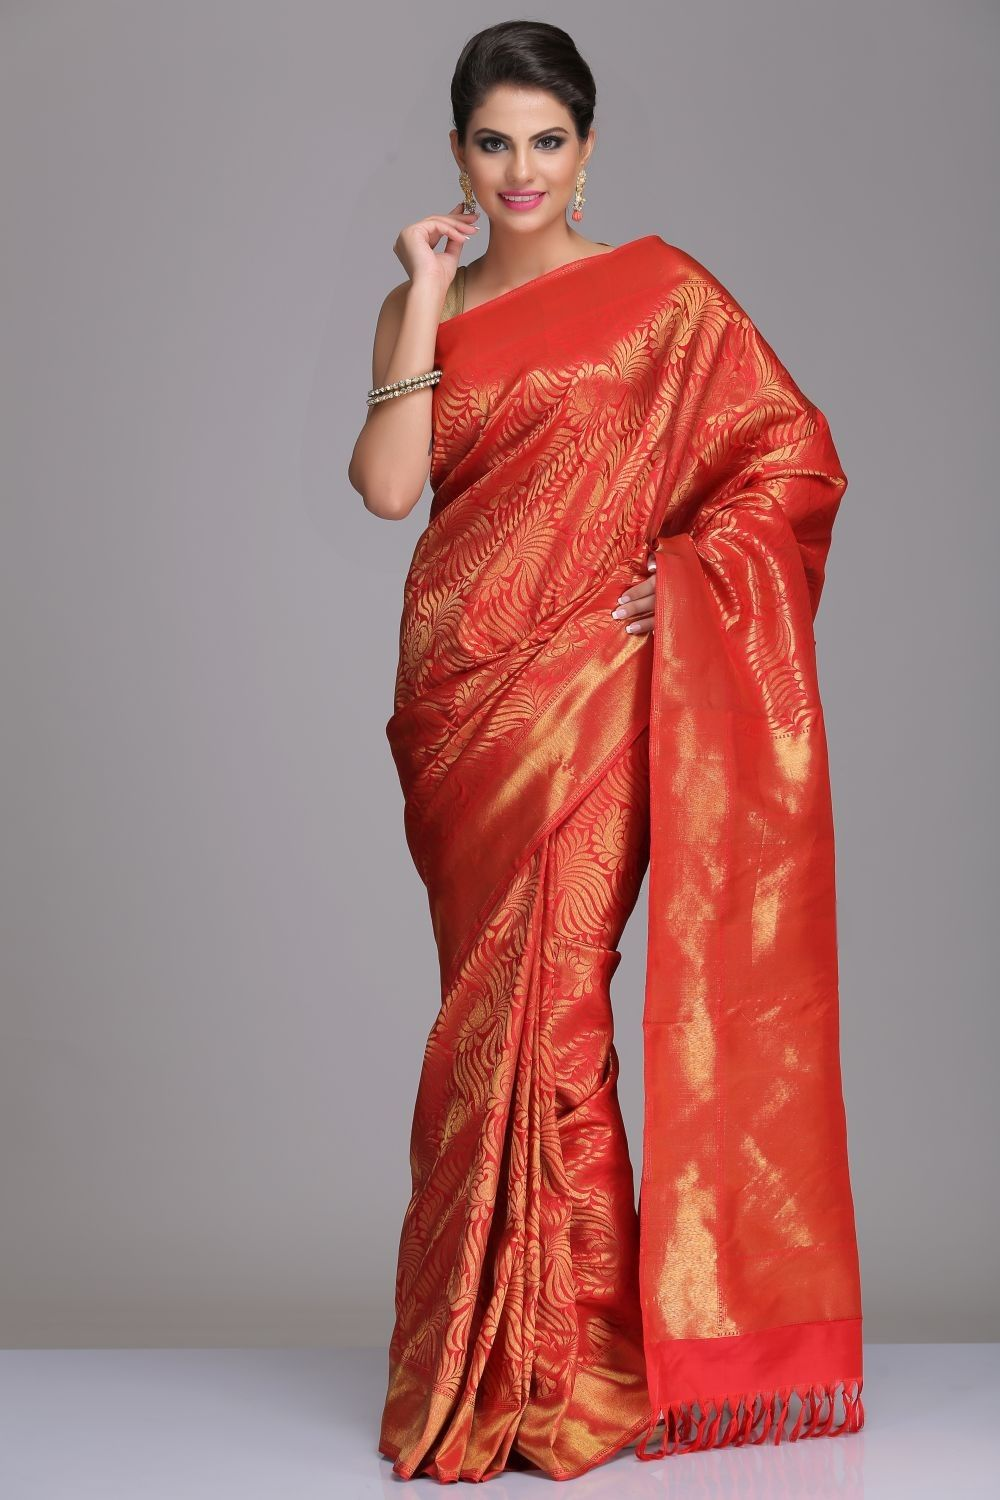 3a64a57ac0 Rust Red Kanjivaram Pure Silk Saree With All Over Gold Zari Paisley &  Floral Jal With Real Zari